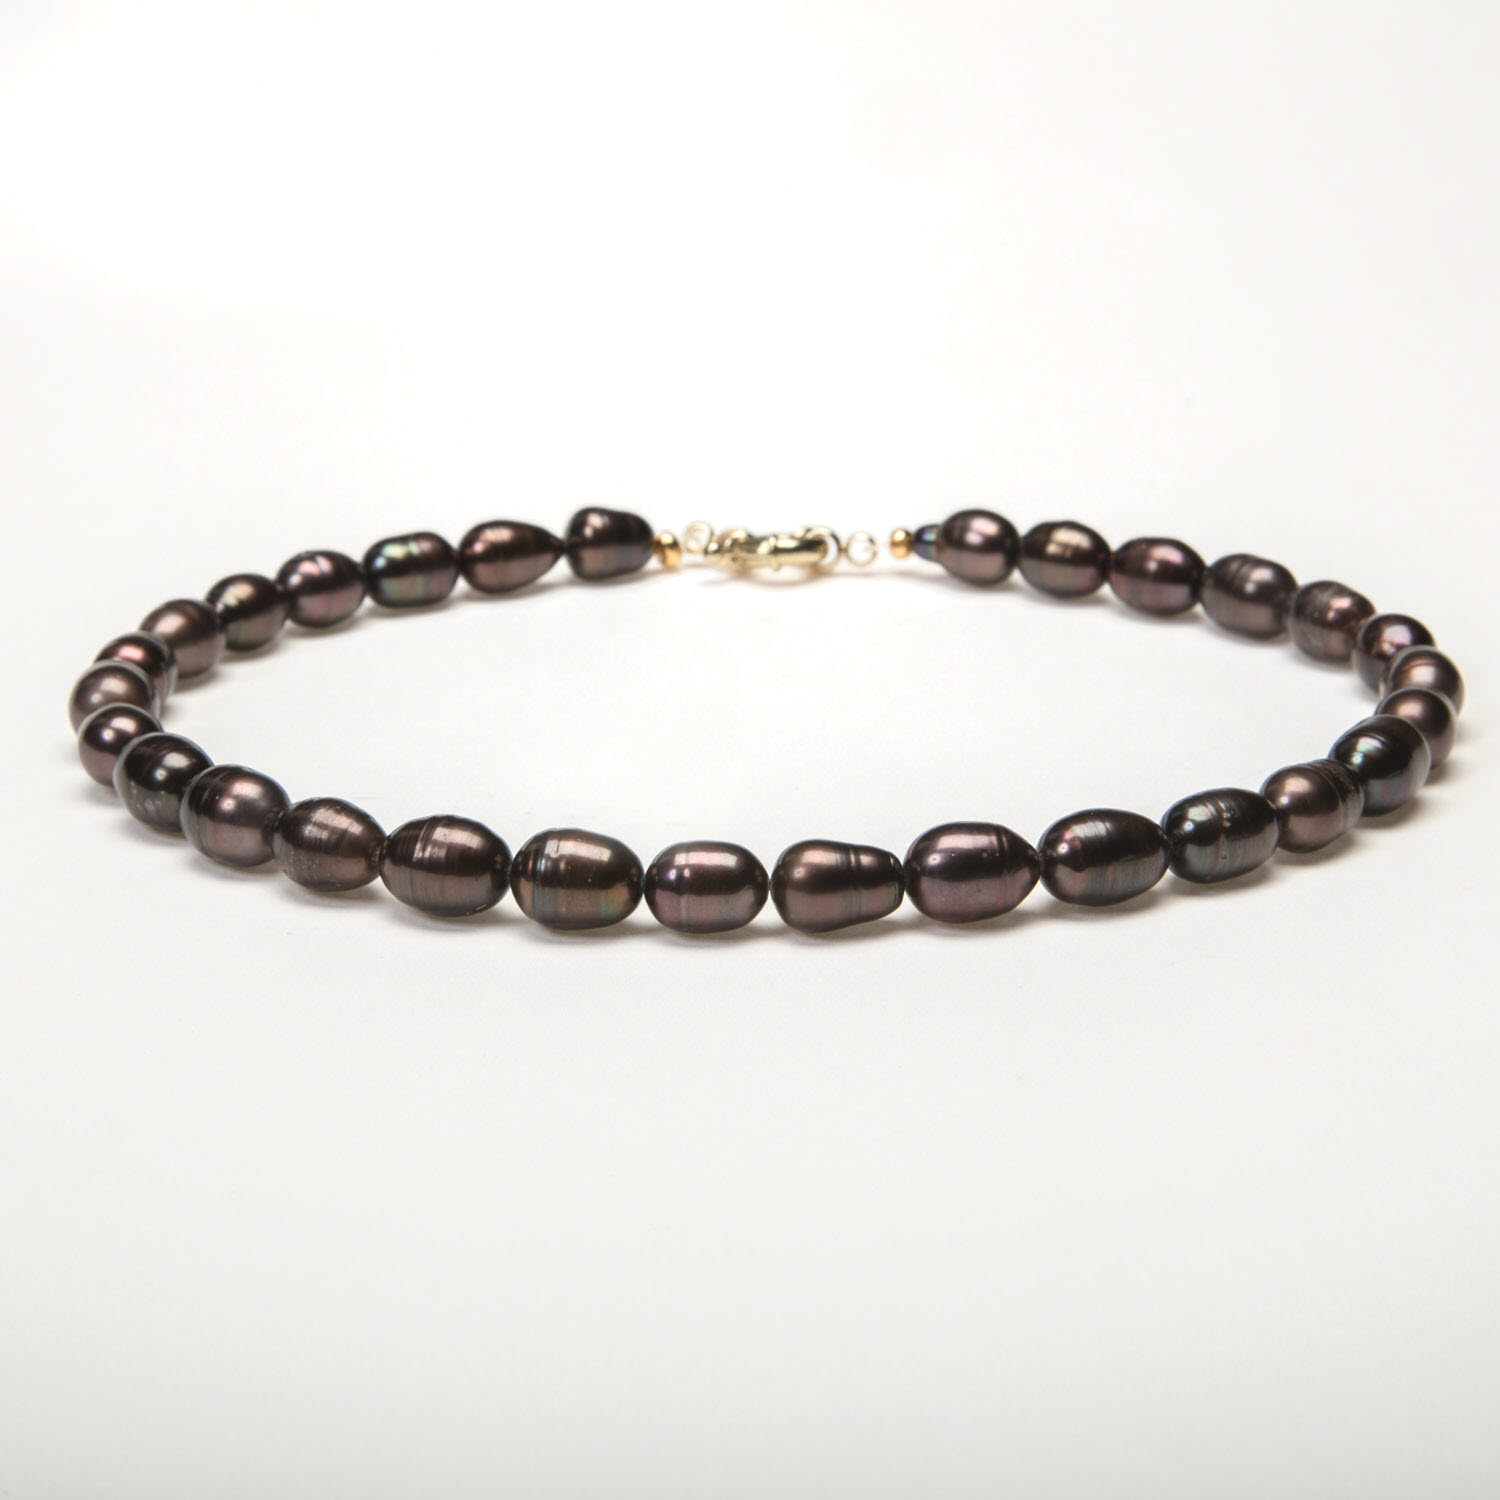 Chocolate Baroque Pearl Necklace - Luxe AAA Standard